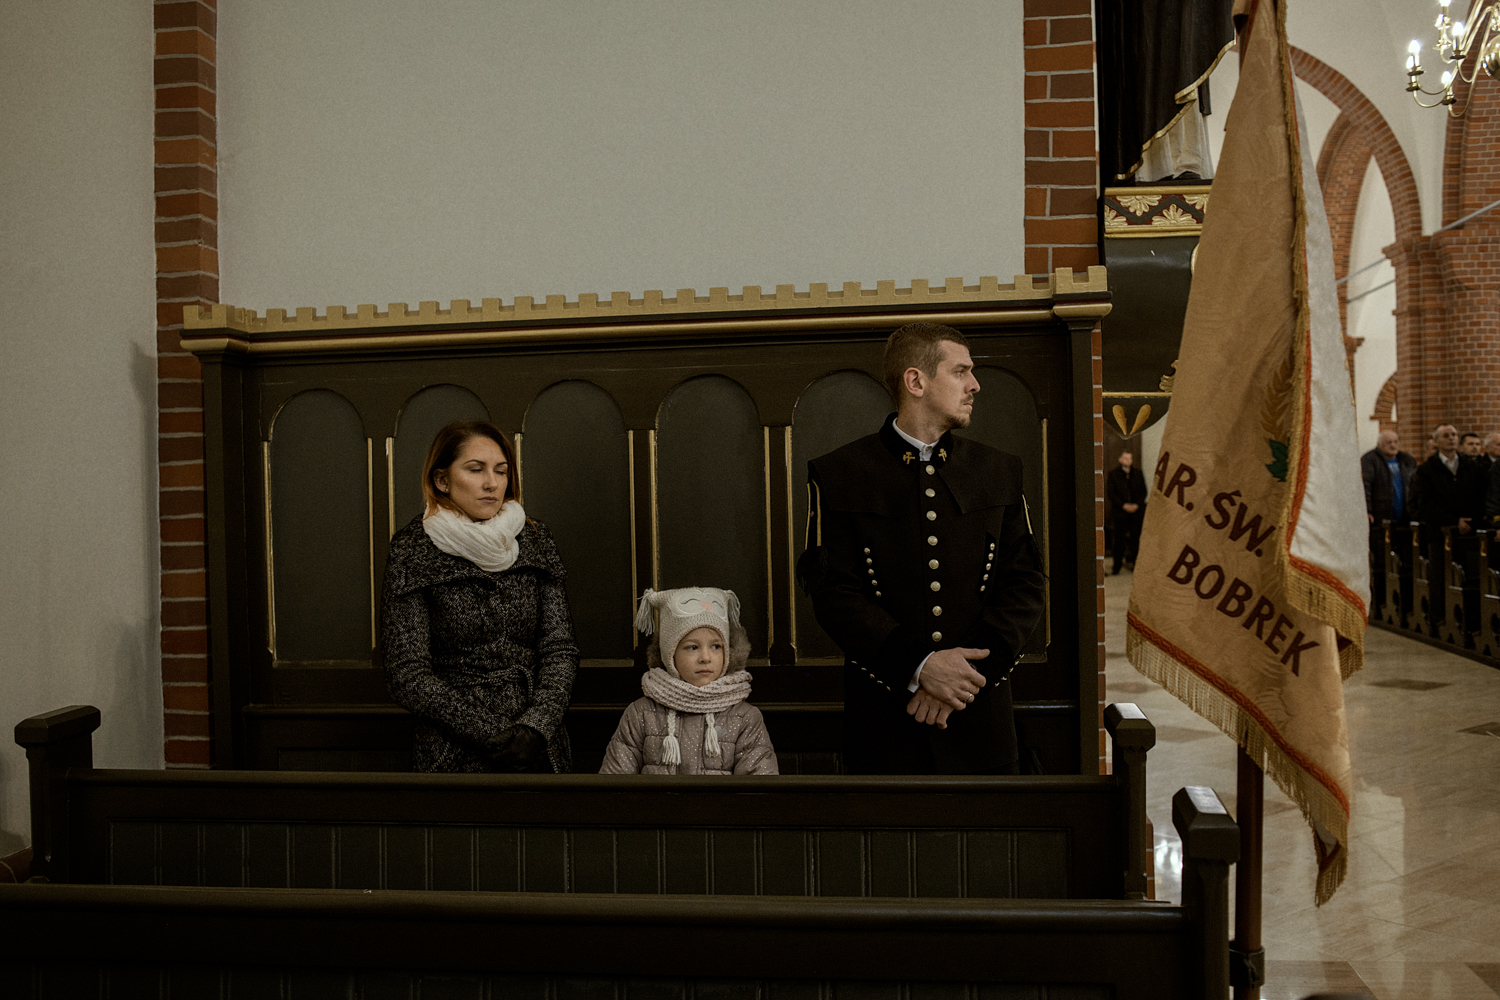 A family celebrates the Mass for Saint Barbara in Bobrek, a neighbourhood in the city of Bytom. Saint Barbara is the coal miner's patron saint.